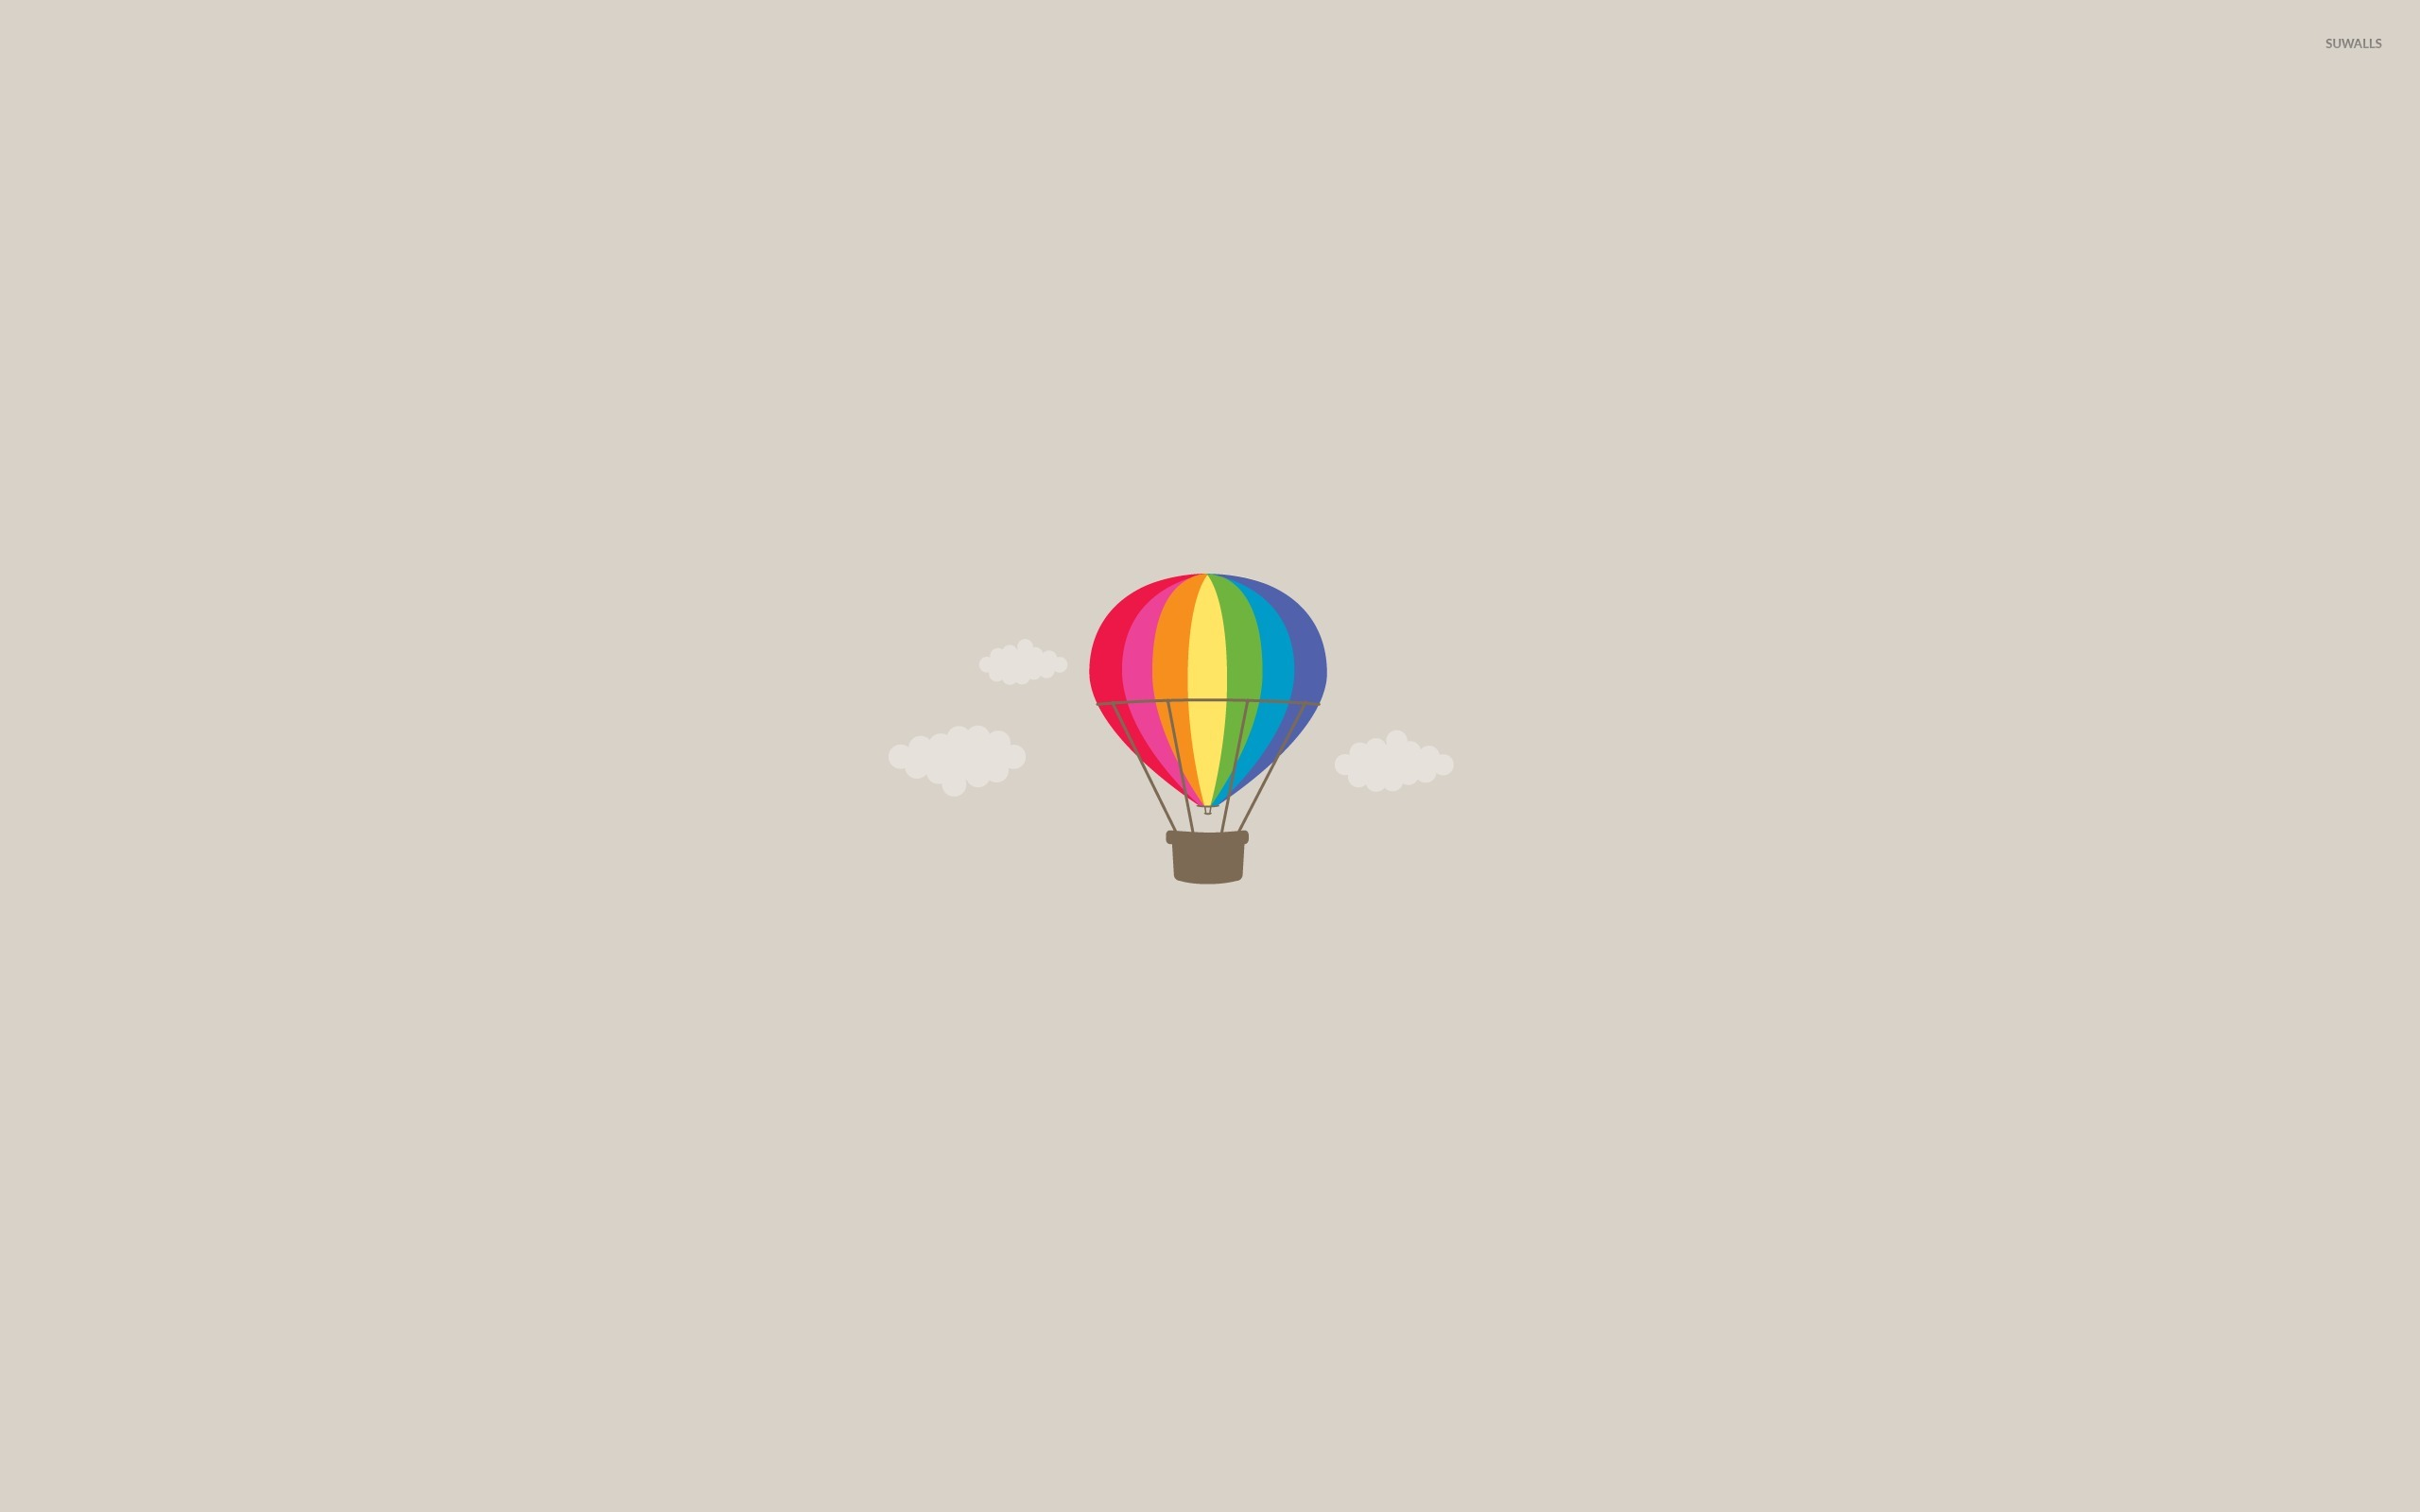 Hot Air Balloon Wallpaper Minimalistic Wallpapers 14383